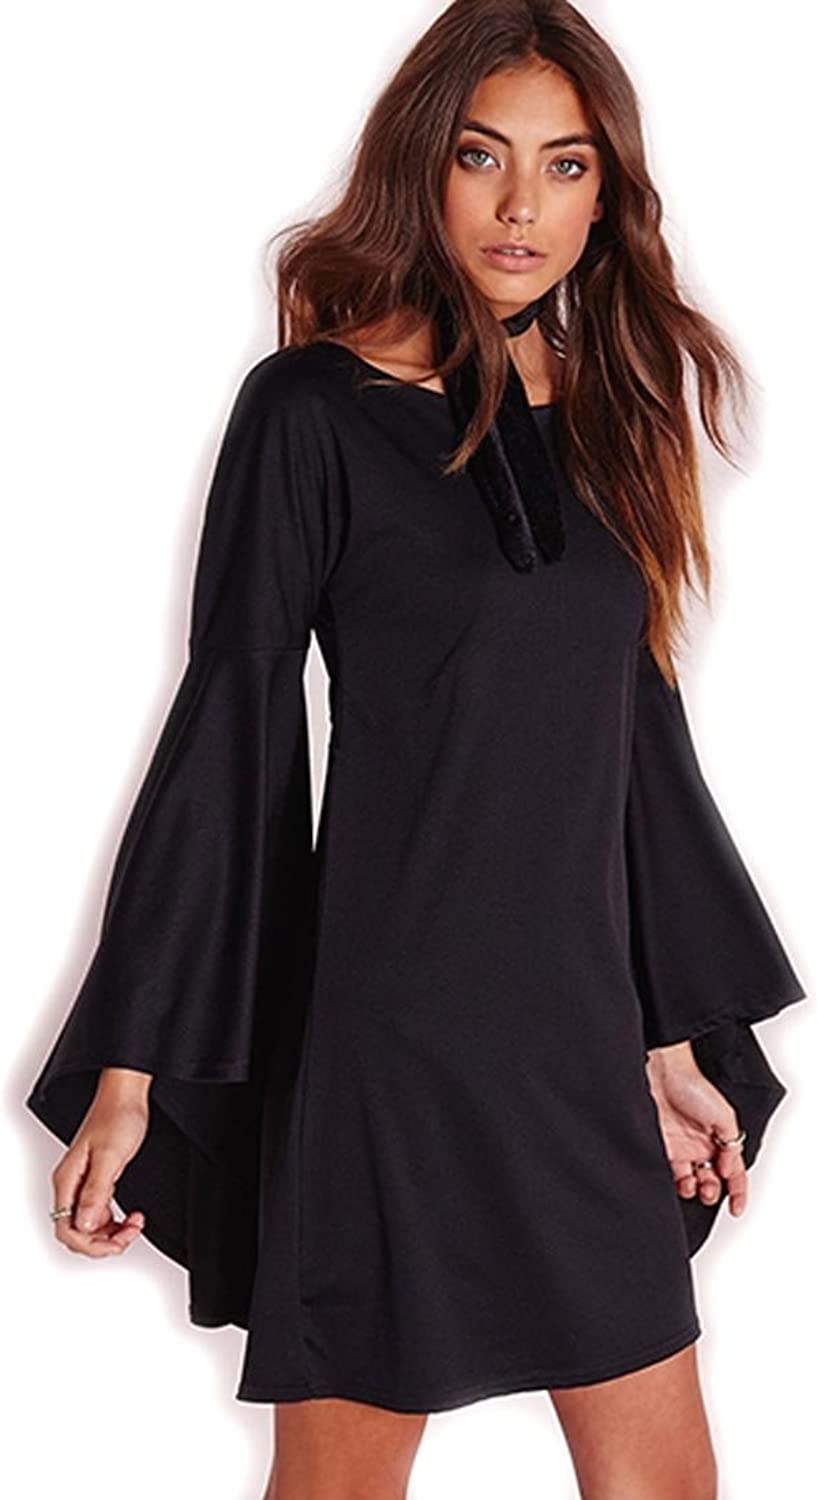 Black Solid color Sexy Short Mini Dress with Long Flared Bell Sleeves, Small